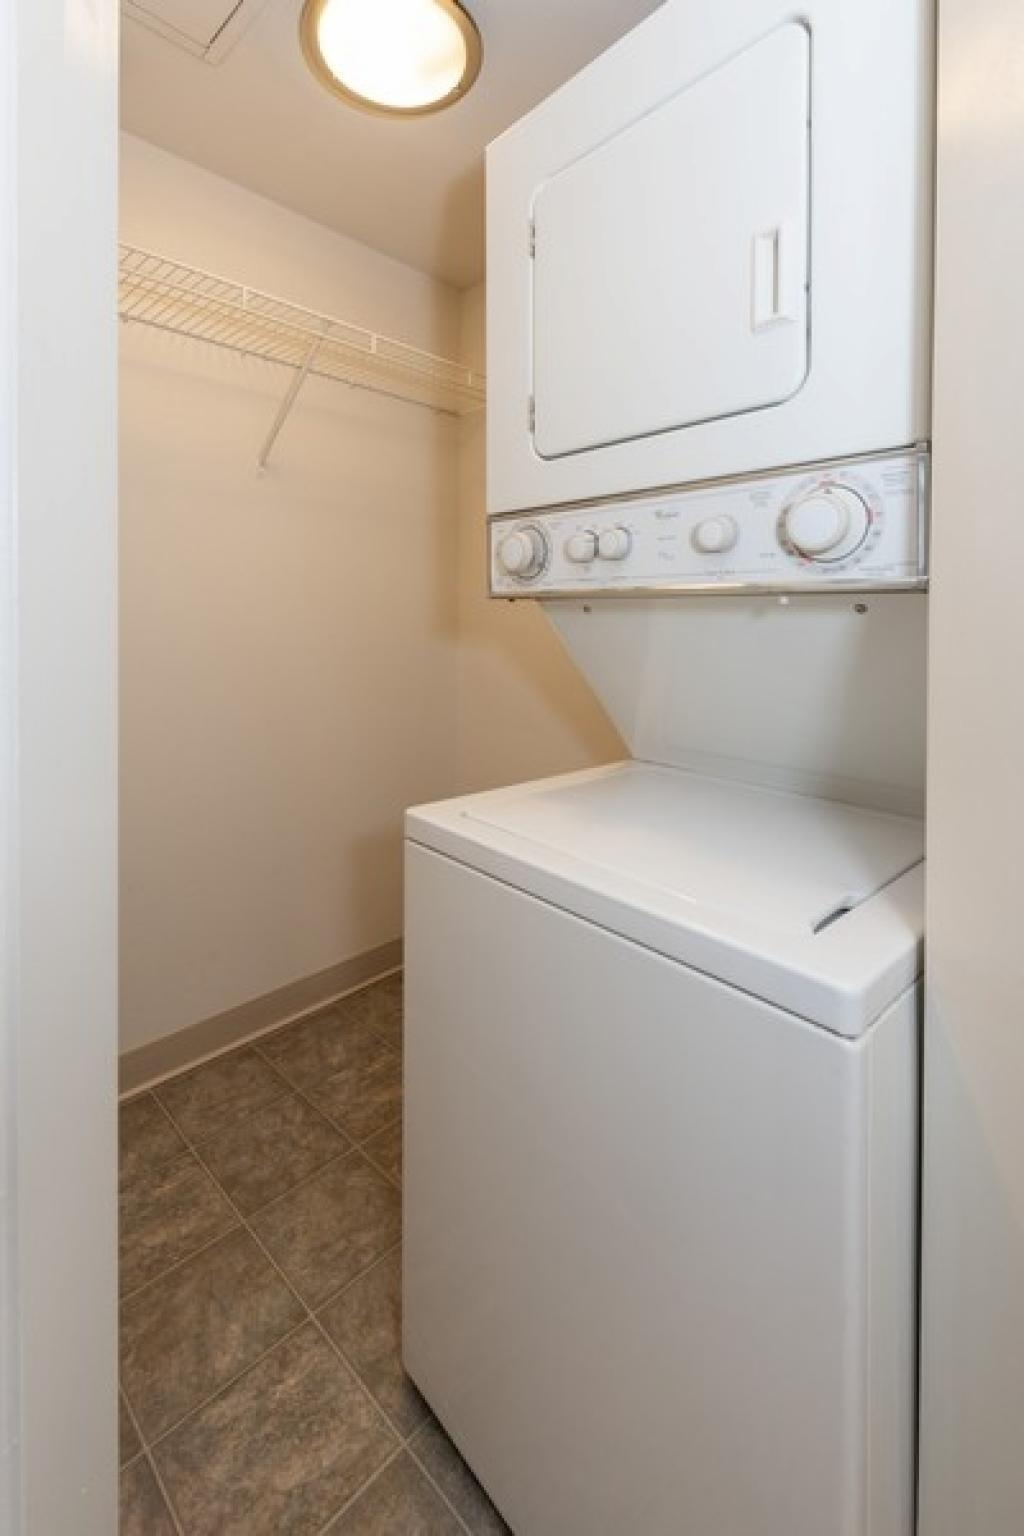 washer/dryer and closet